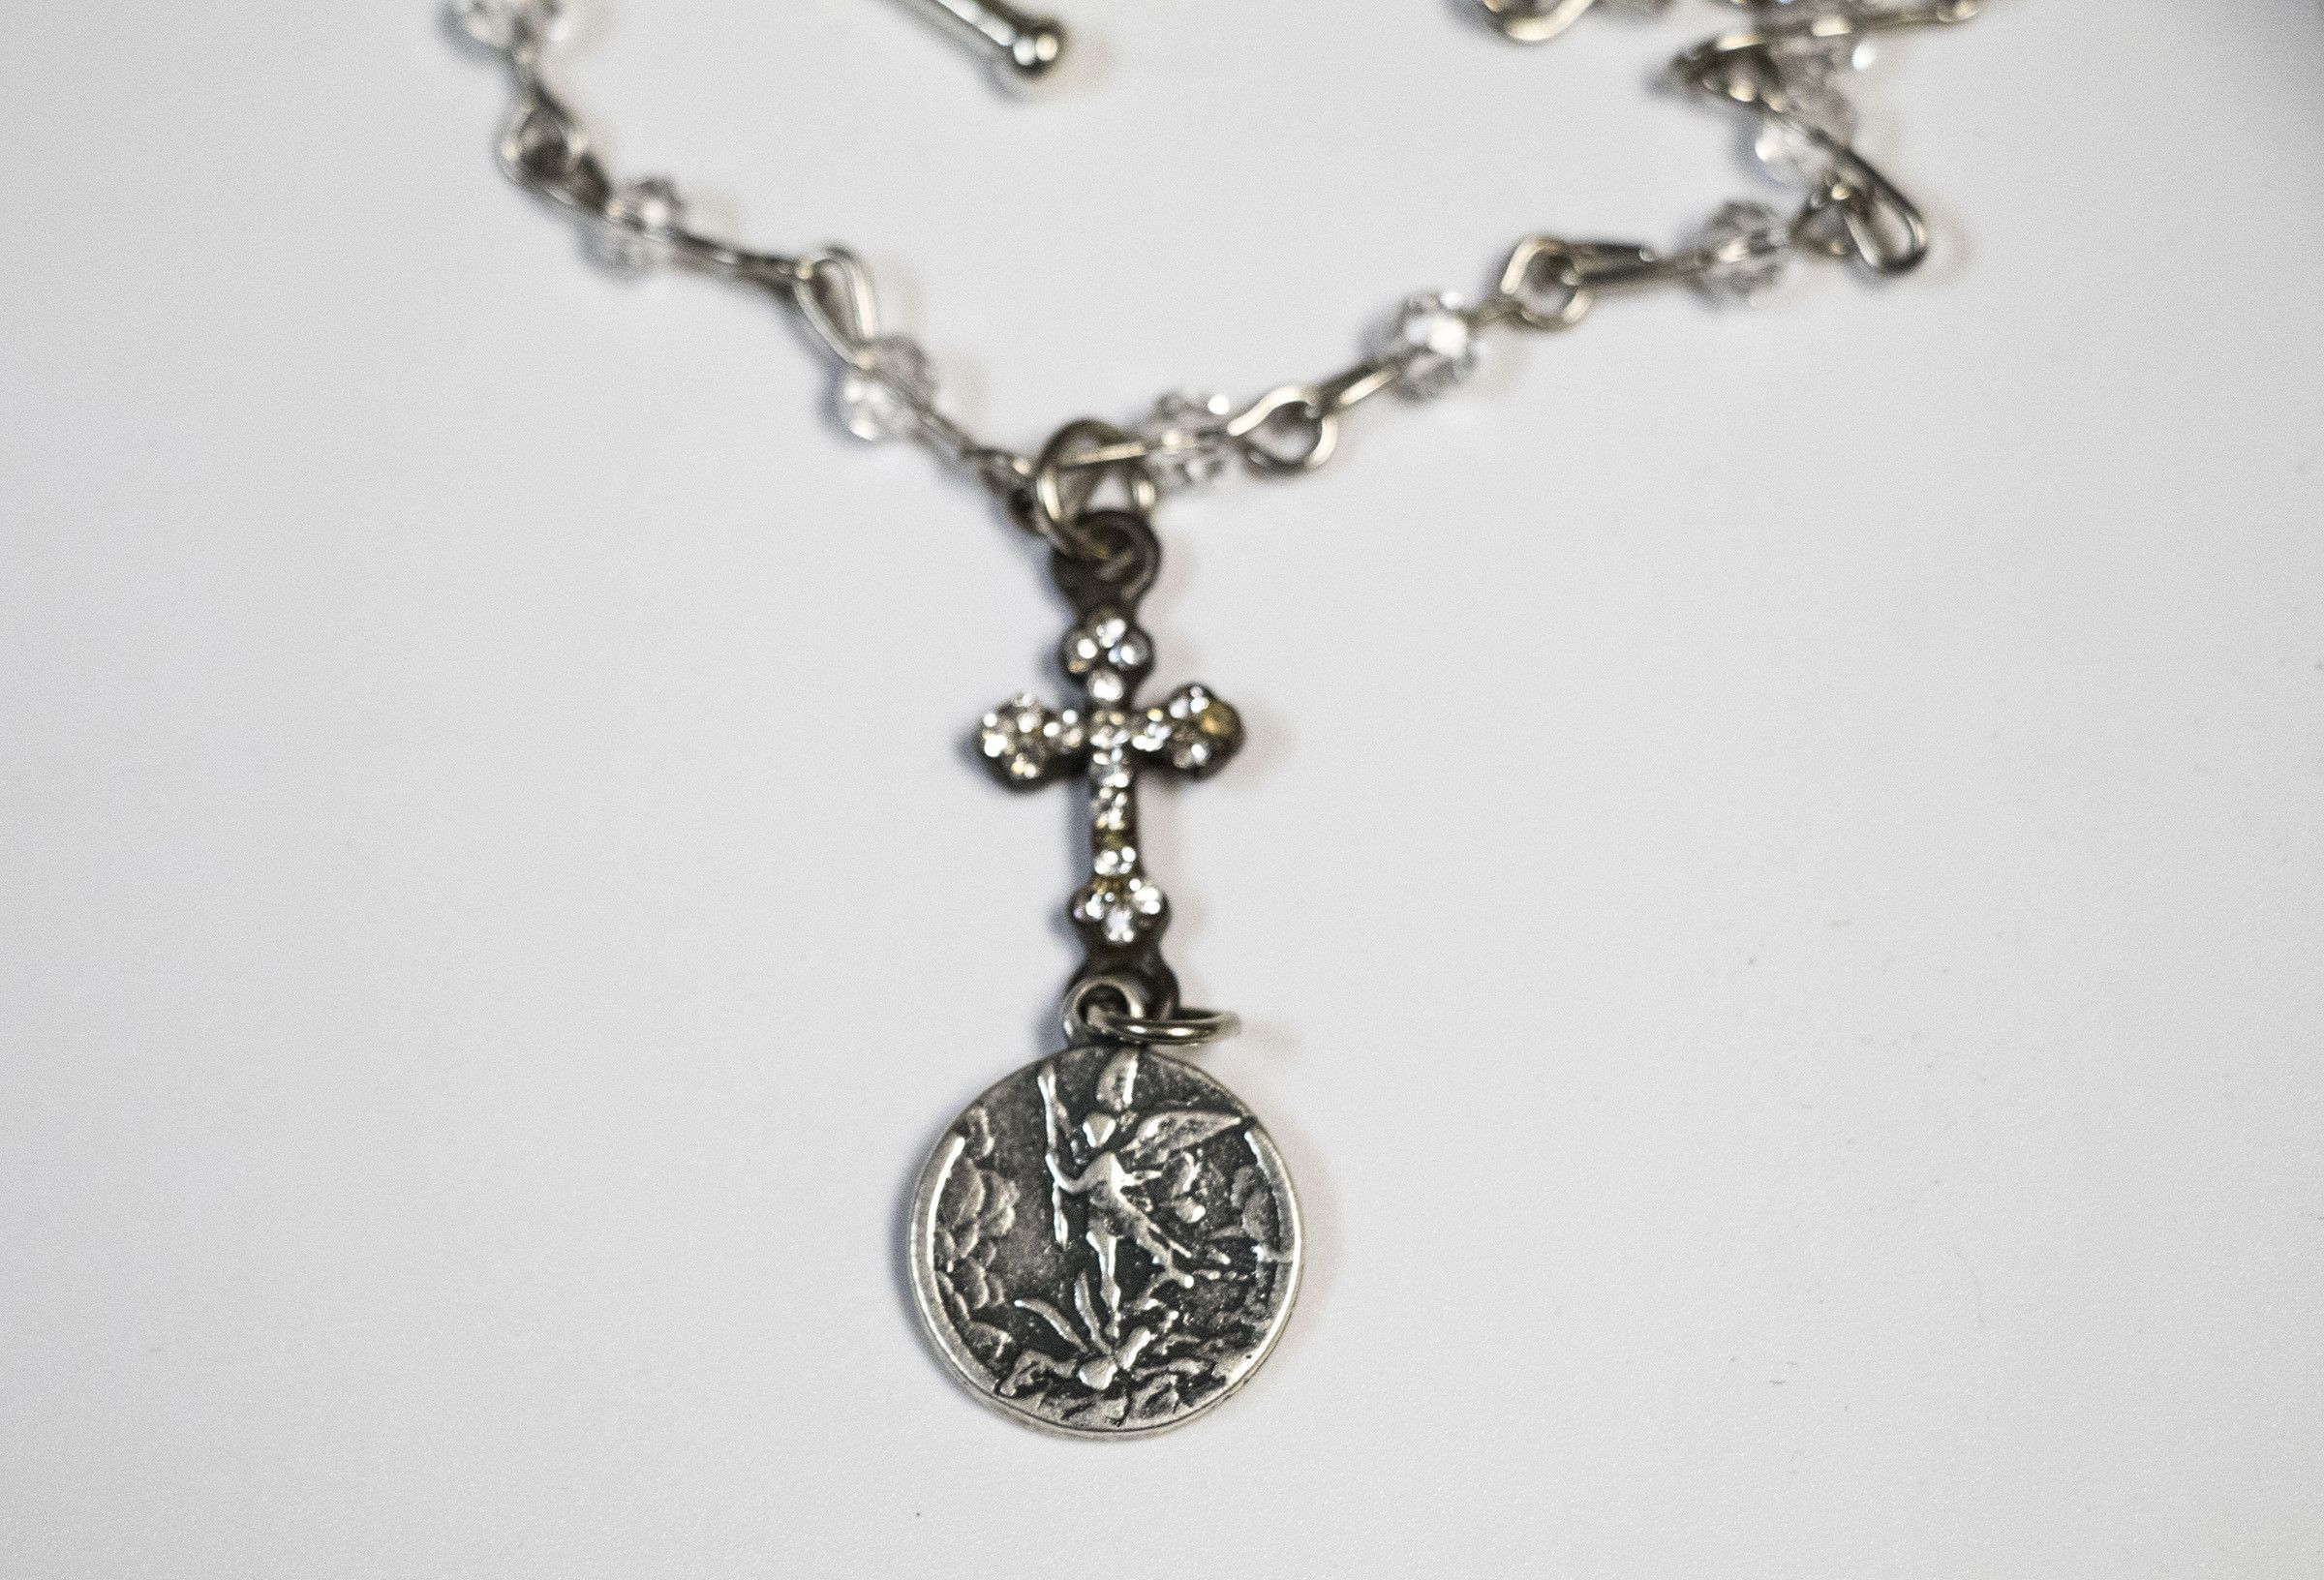 guardian jewelry back tone michaels com angel pendant with inch amazon saint medal michael silver st dp